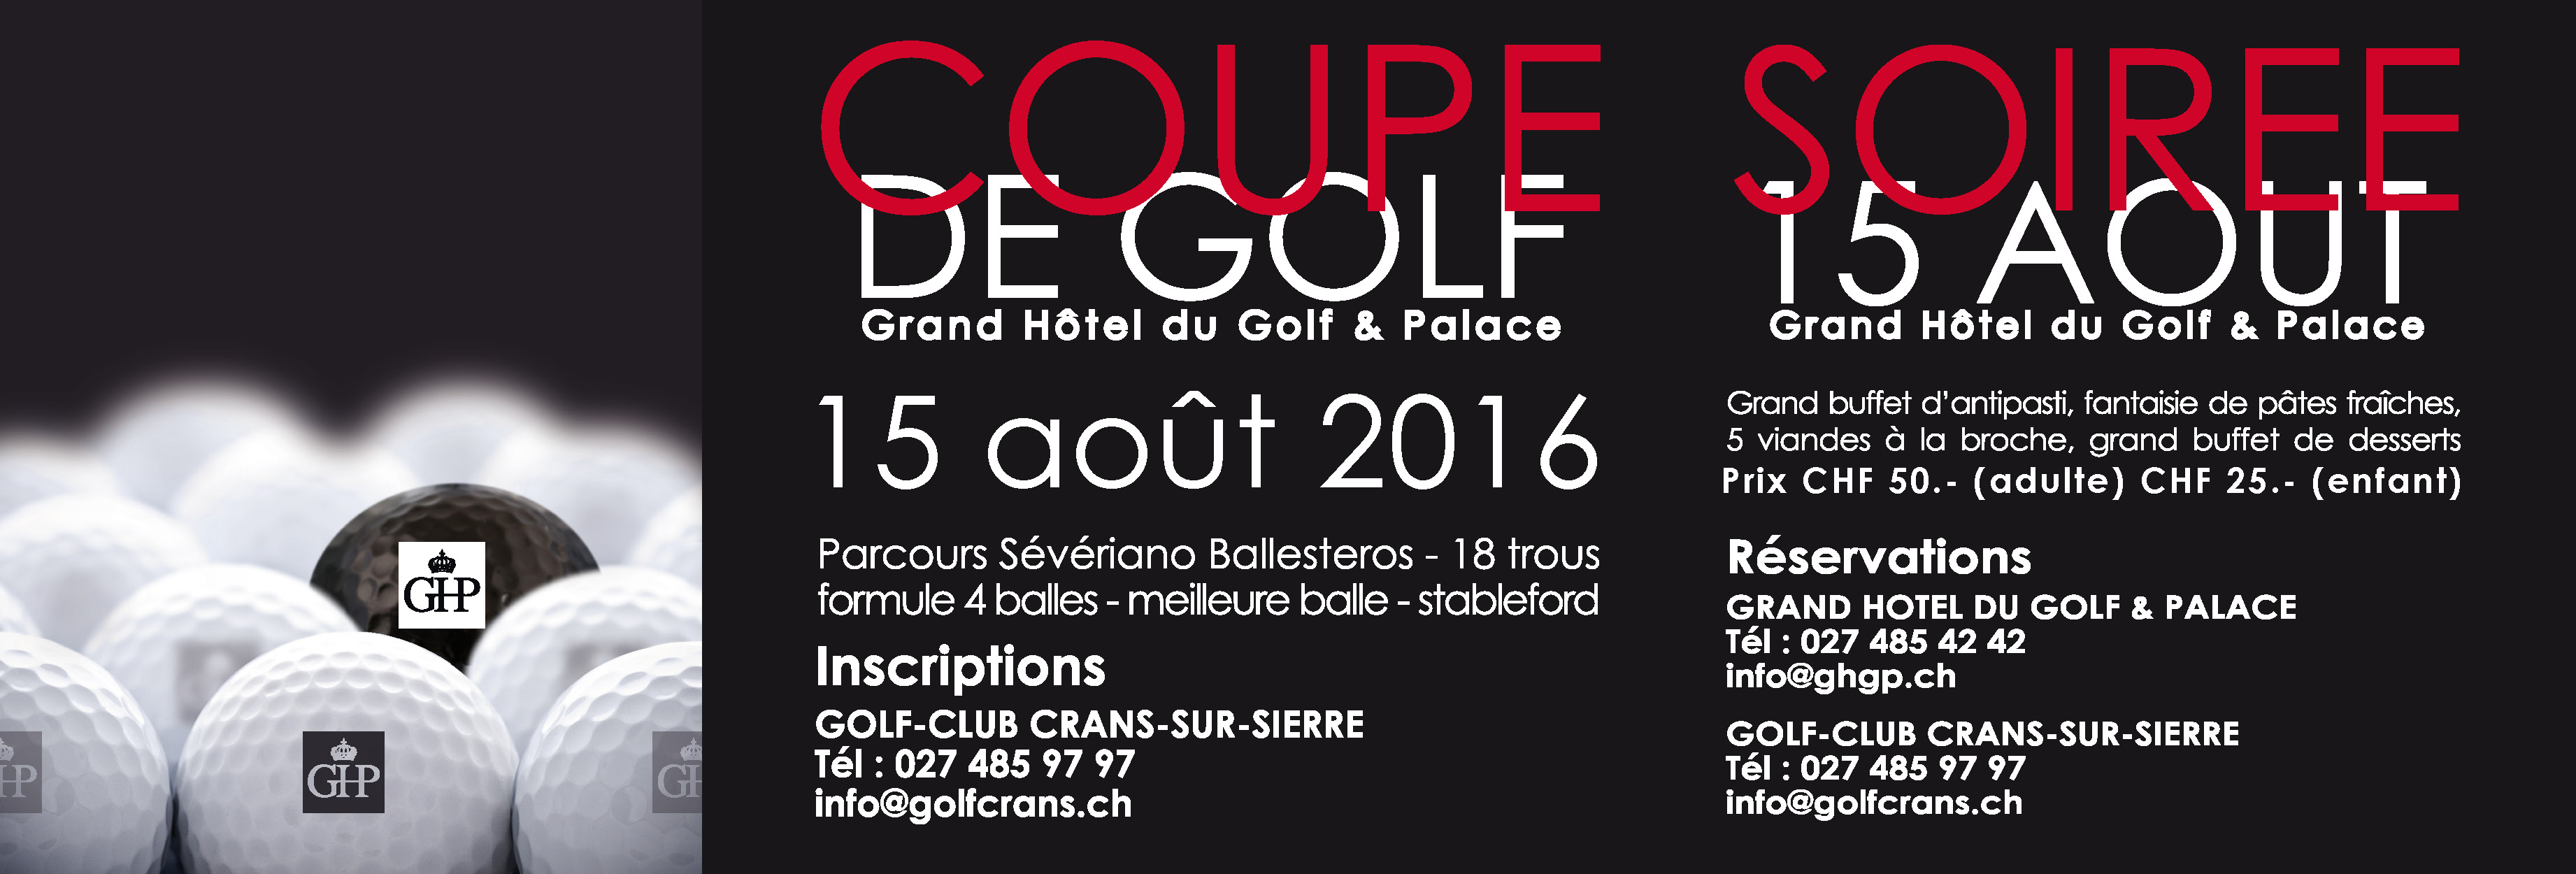 Signature_Coupe_de_golf